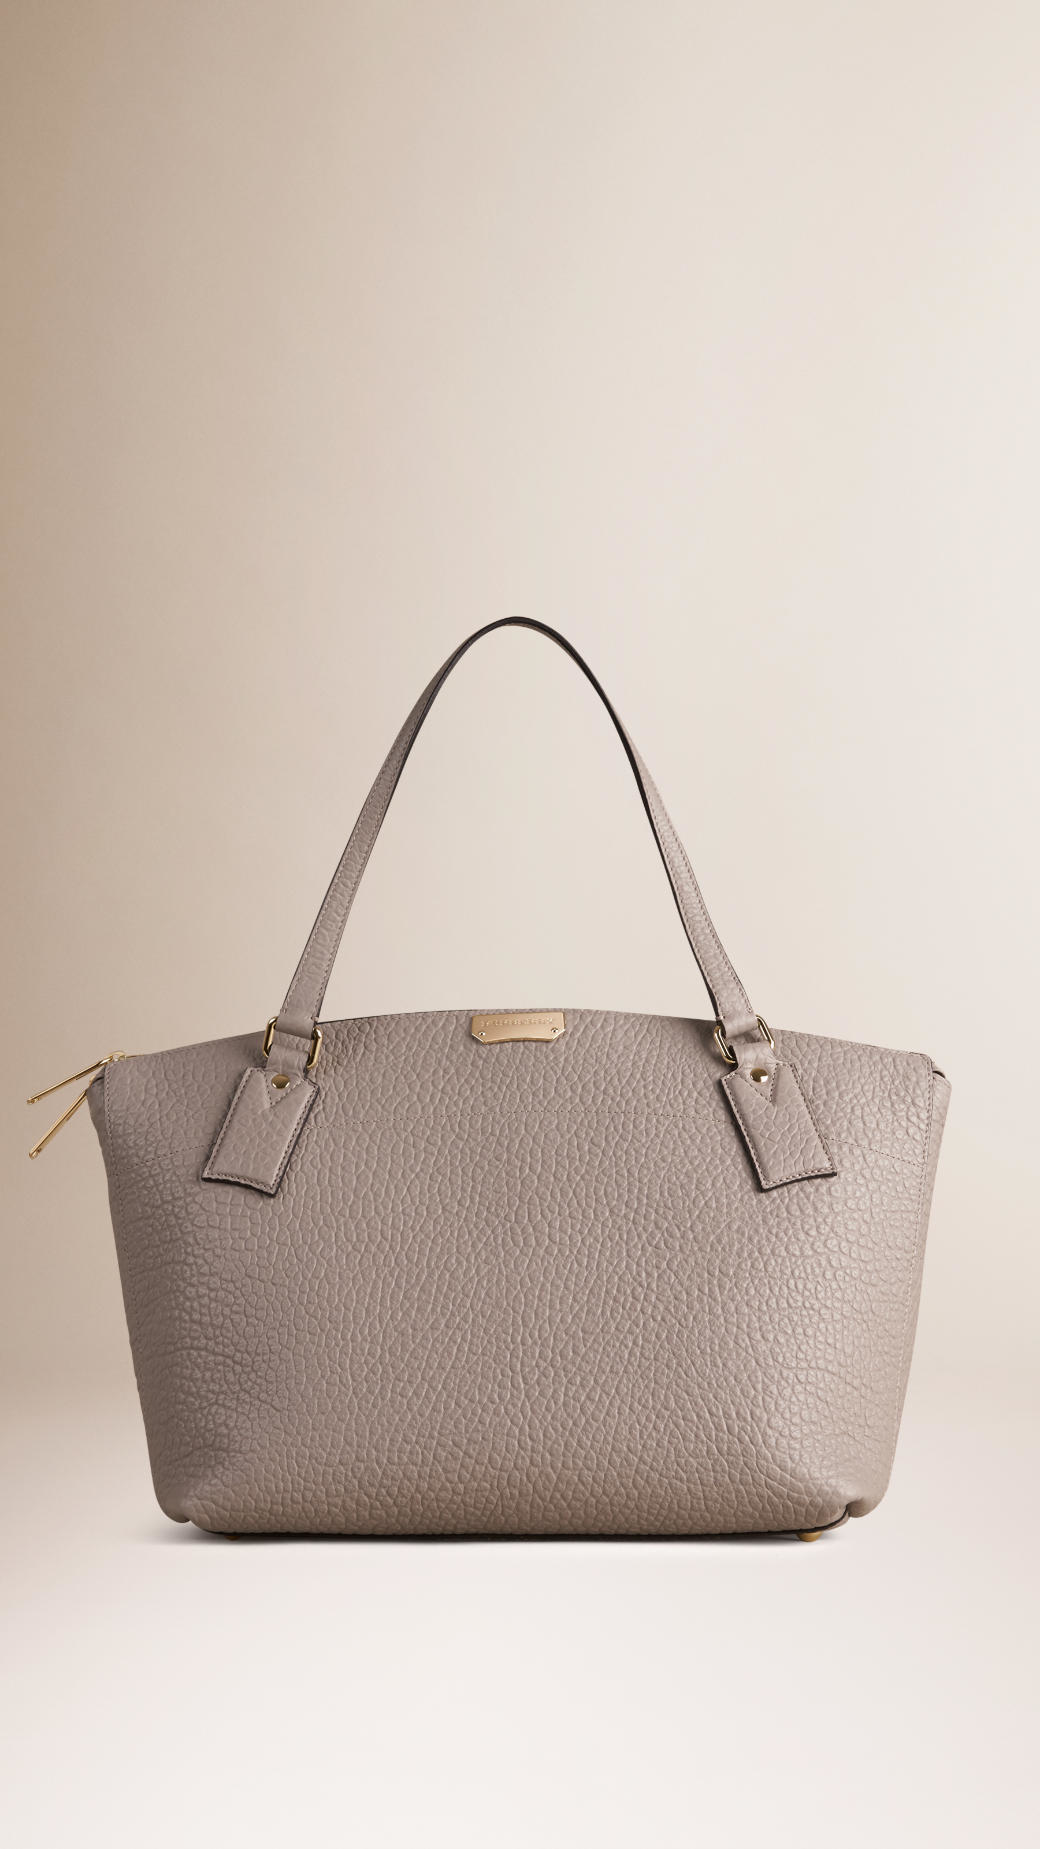 a609d1615fe1 Lyst - Burberry Medium Signature Grain Leather Tote Bag Pale Grey in ...